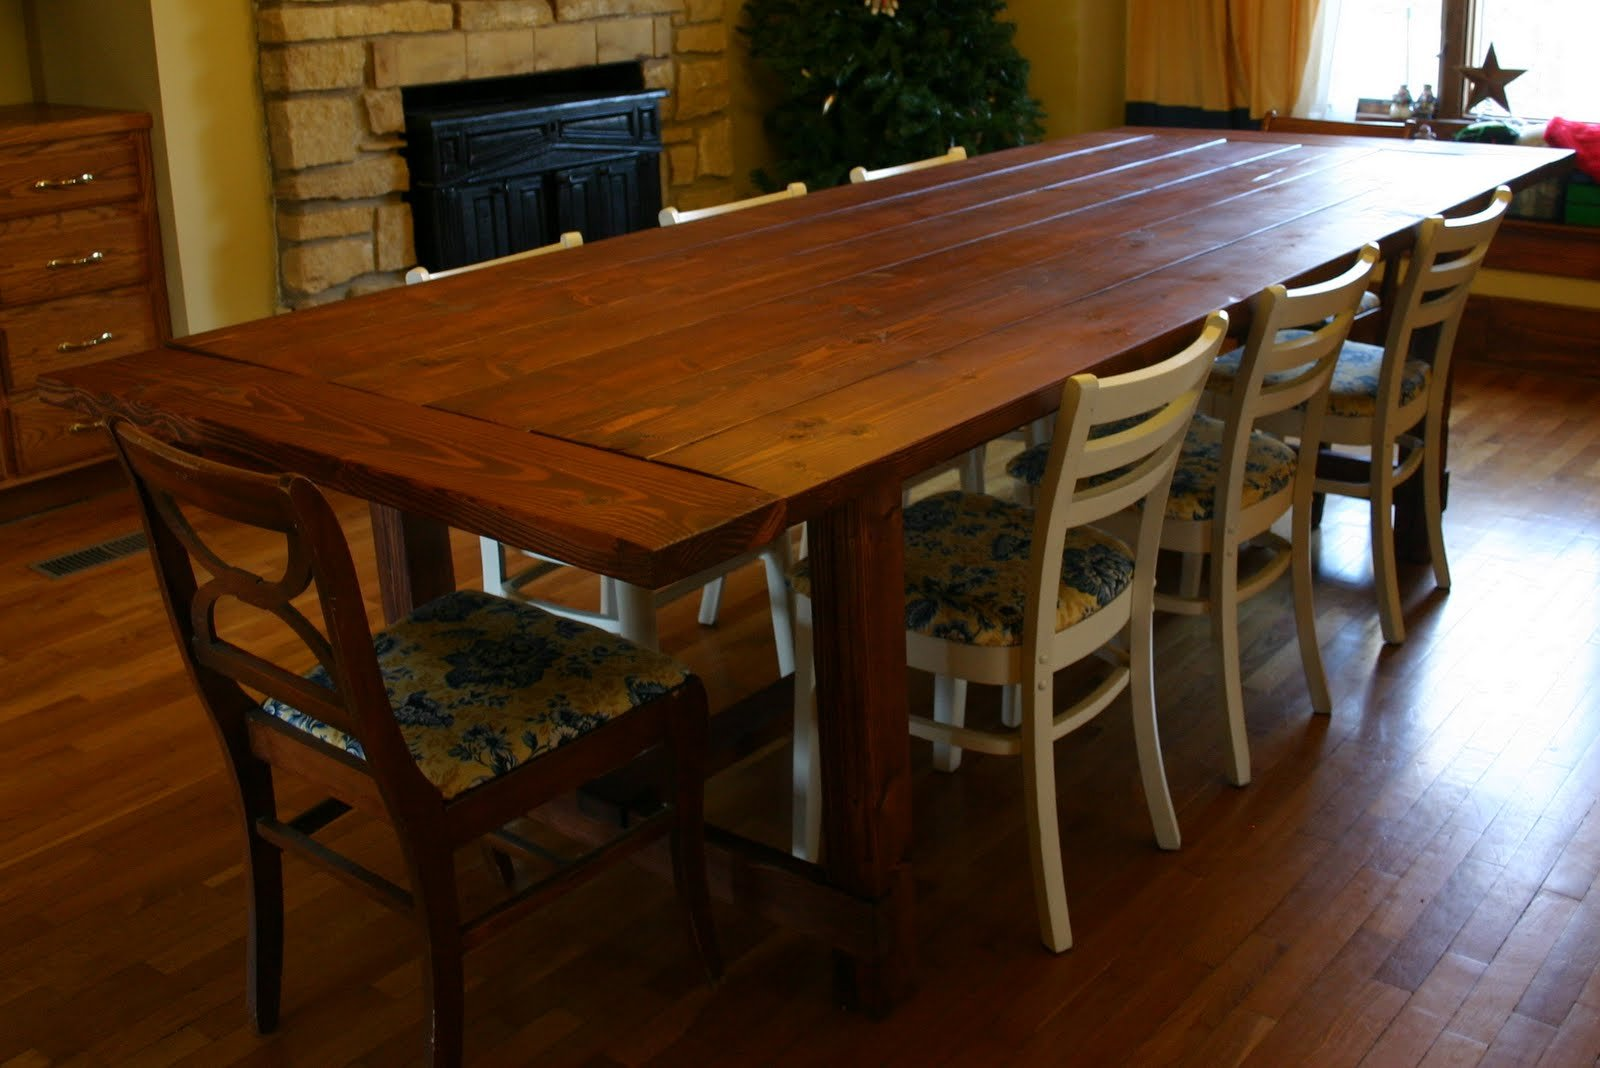 Farmhouse dining table plans Photo - 1